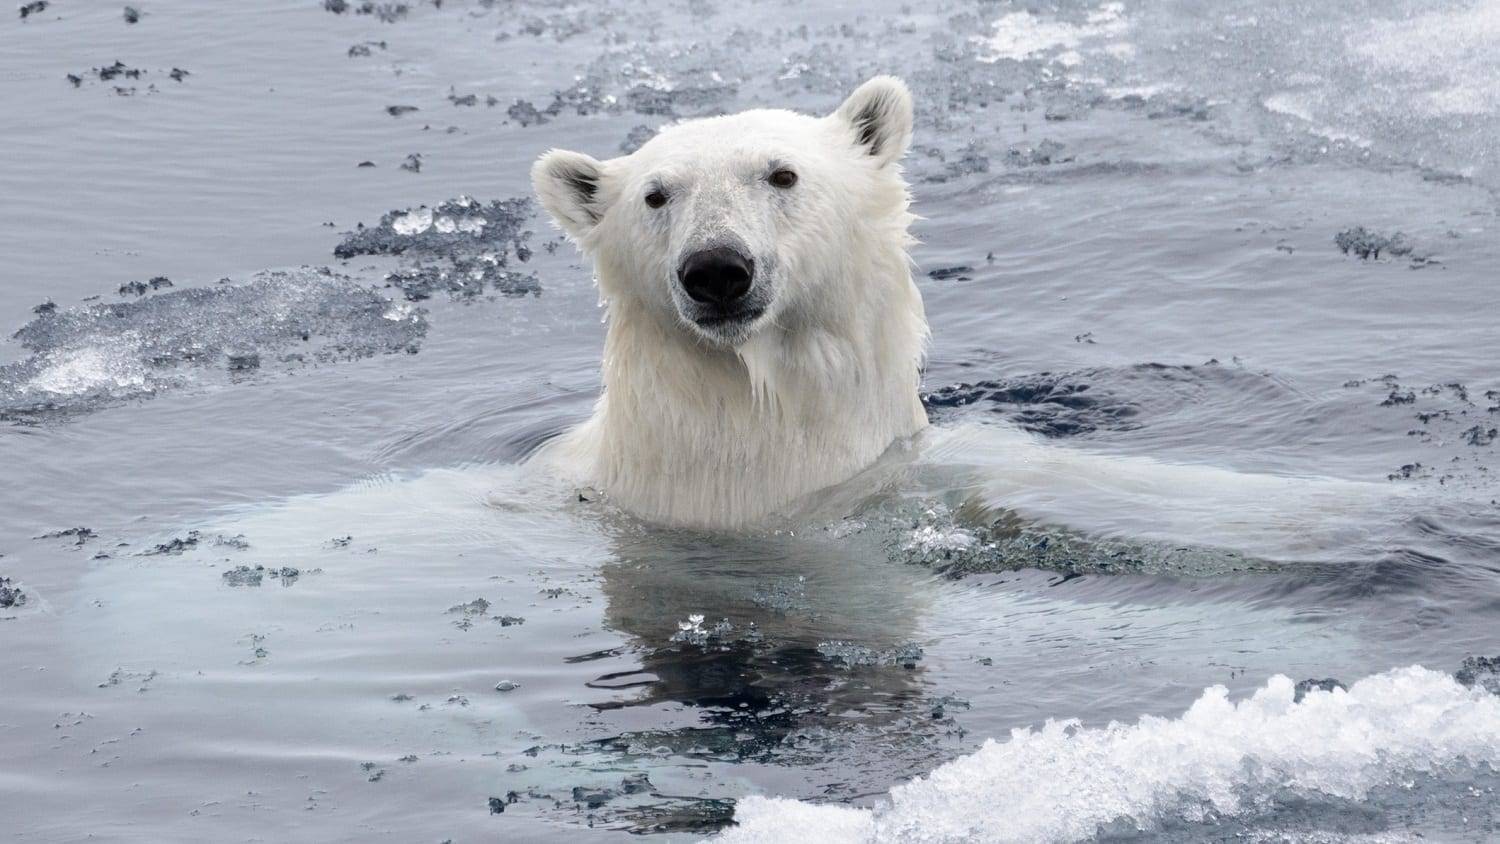 Wild polar bear swimming with slushy ice: ID 132162679 © Alexey Sedov | Dreamstime.com